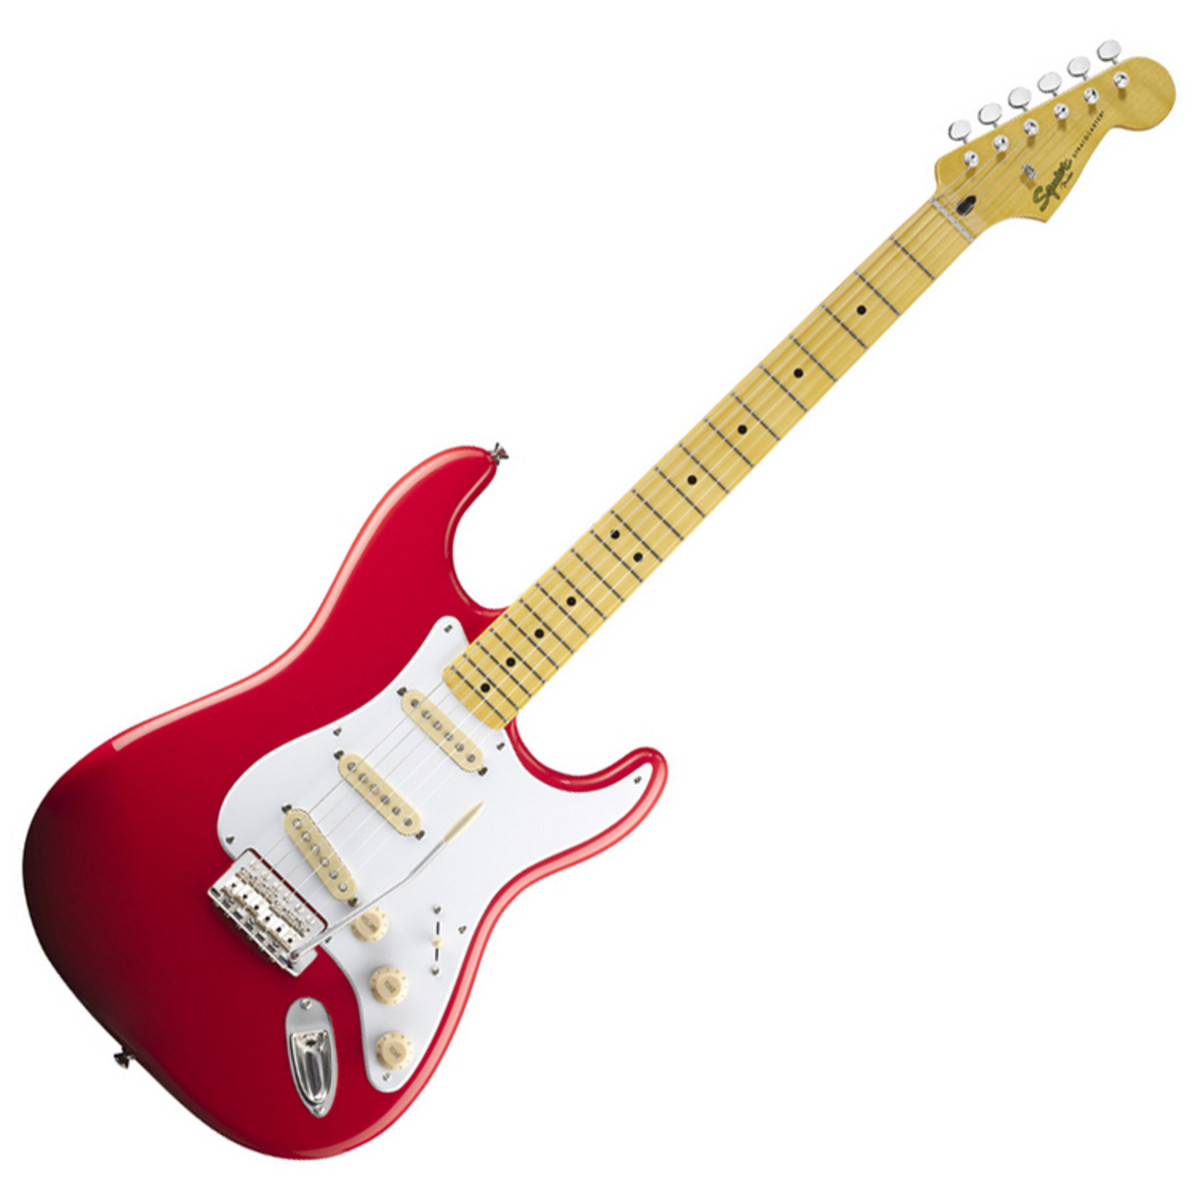 squier by fender classic vibe 50s stratocaster fiesta red at gear4music. Black Bedroom Furniture Sets. Home Design Ideas